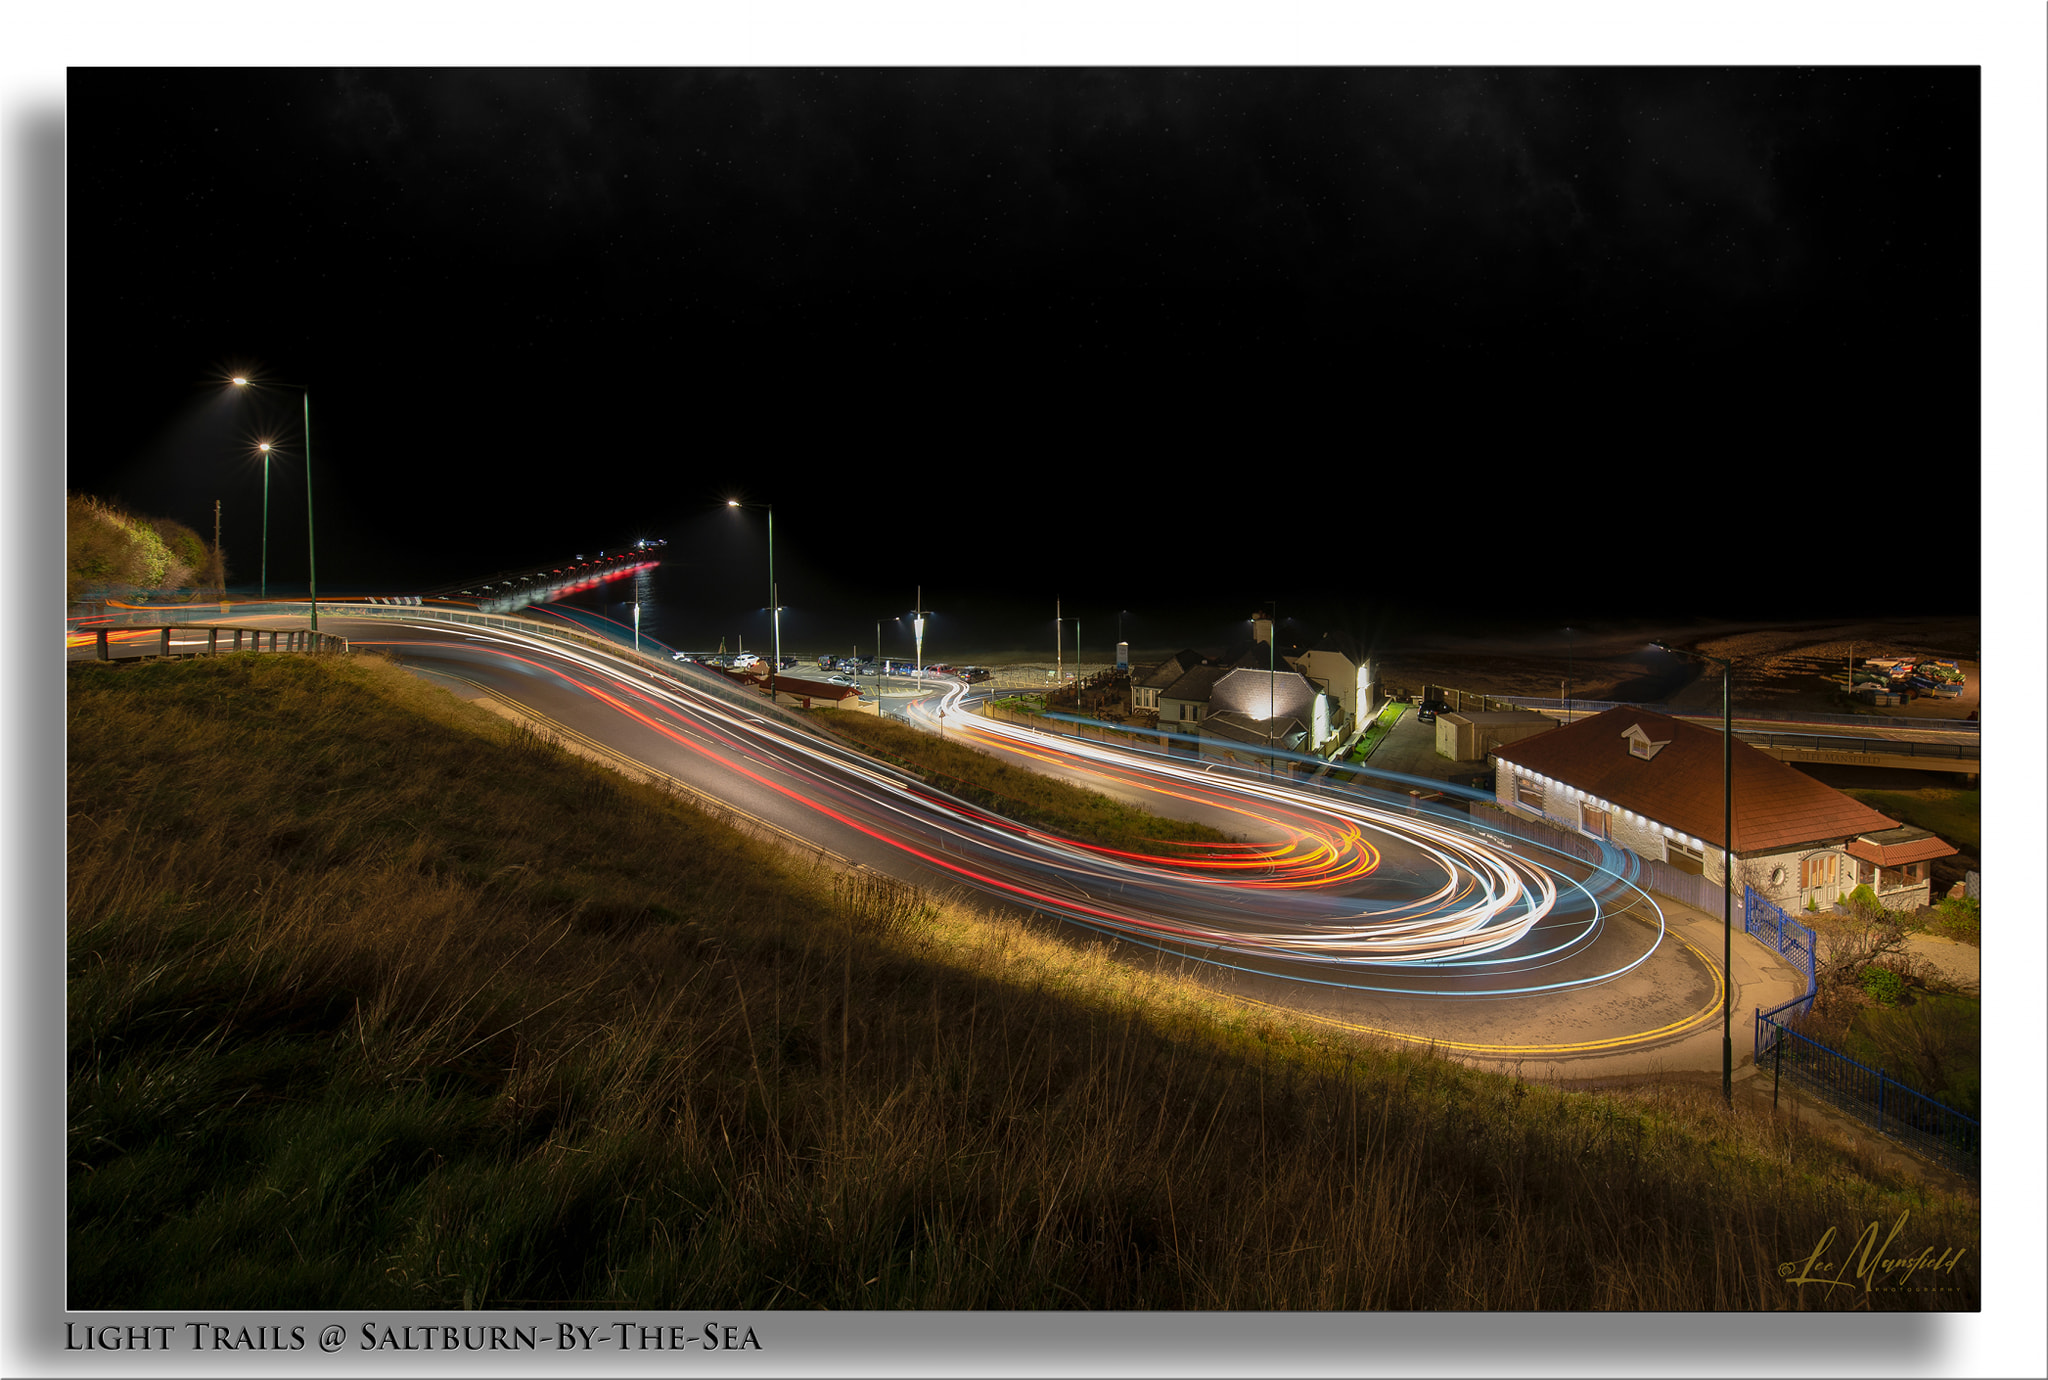 Light-trails - Saltburn-by-the-Sea